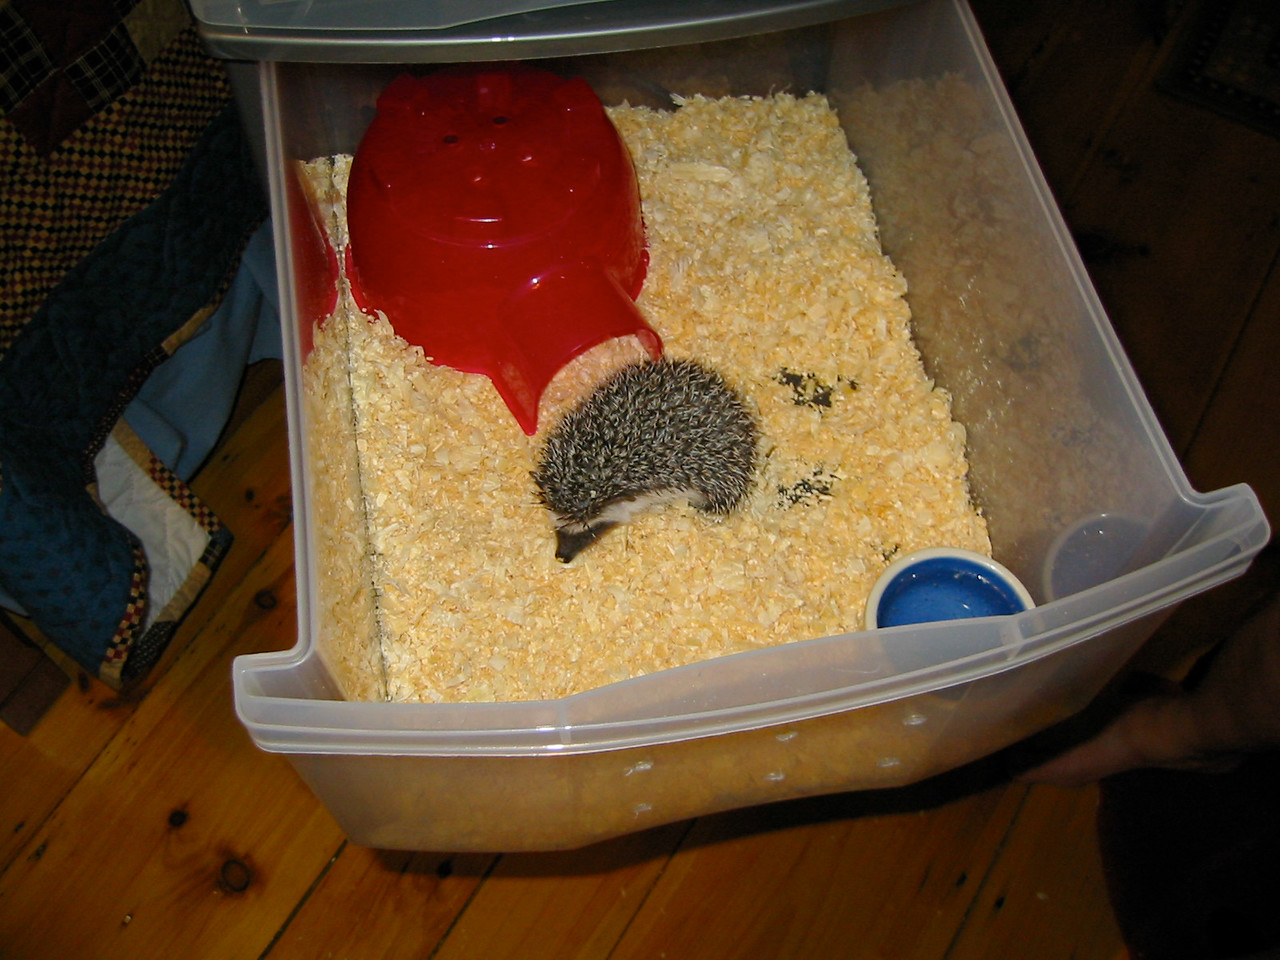 Temporary Housing During Cage Cleaning (07/18/2003)  The babies are moved to temporary housing while their main cages get cleaned.  Filename reference: 20030718-020650-HAH-Hedgehog_Temporary_Housing-SM